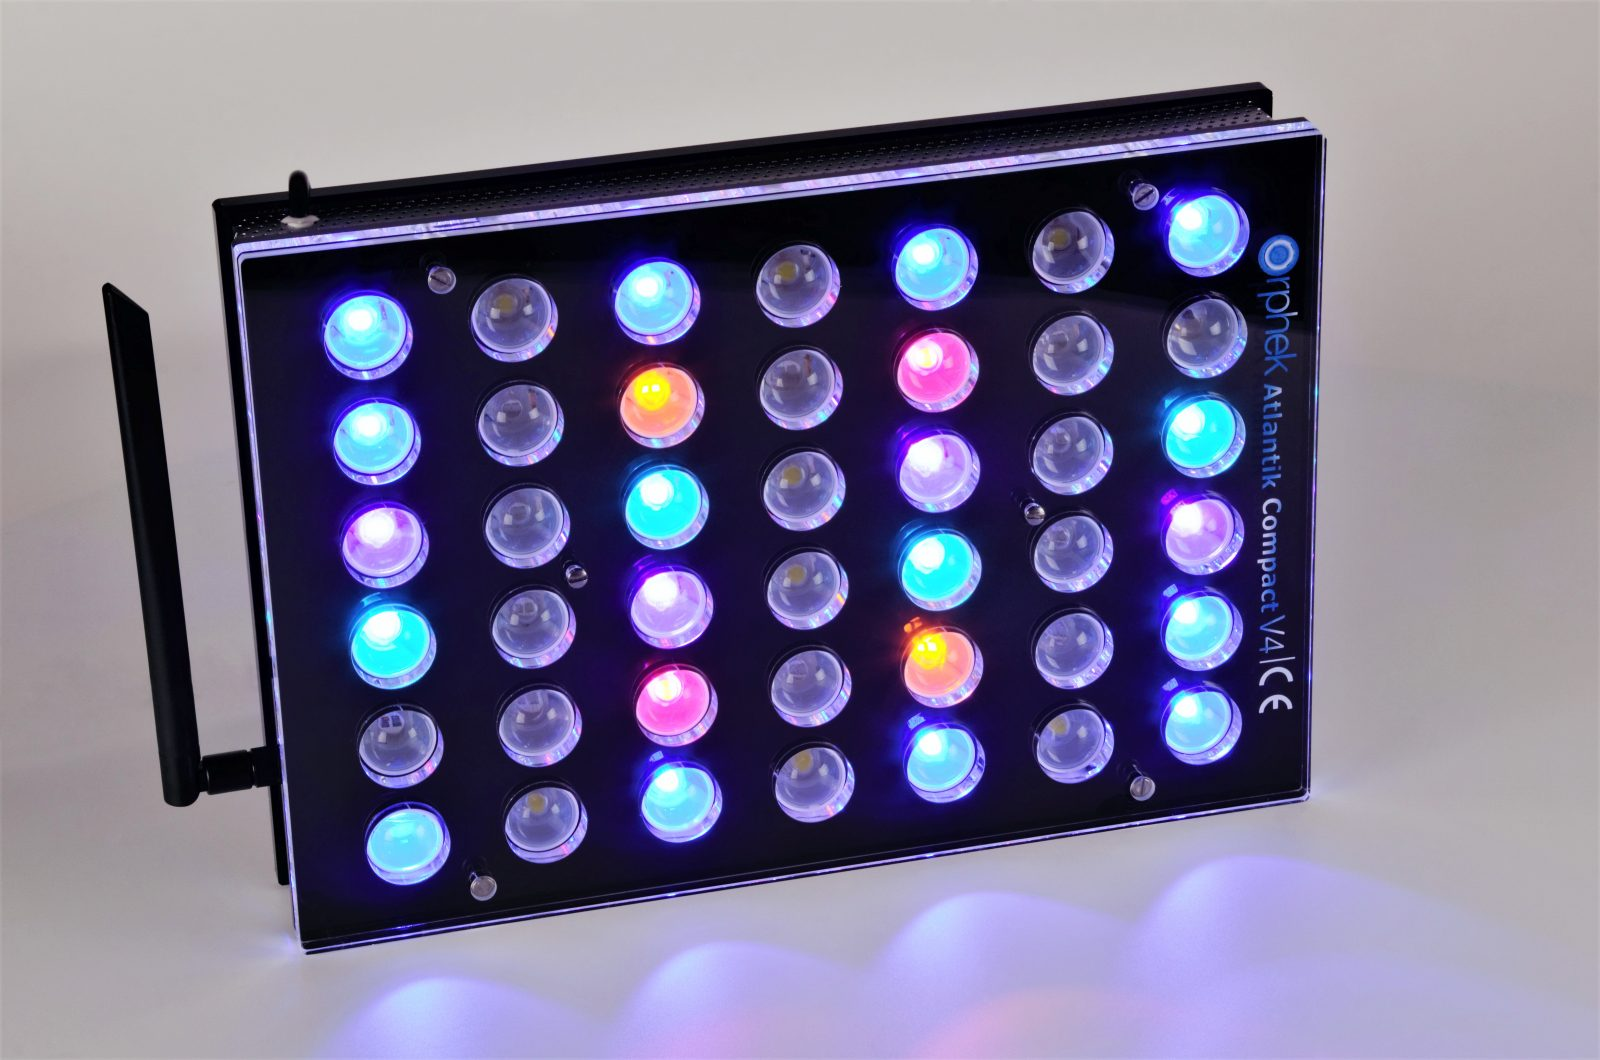 Orphek-Aquarium-LED-Beleuchtung-Atlantik -Compact-V4-light -on -channel 2 + 4